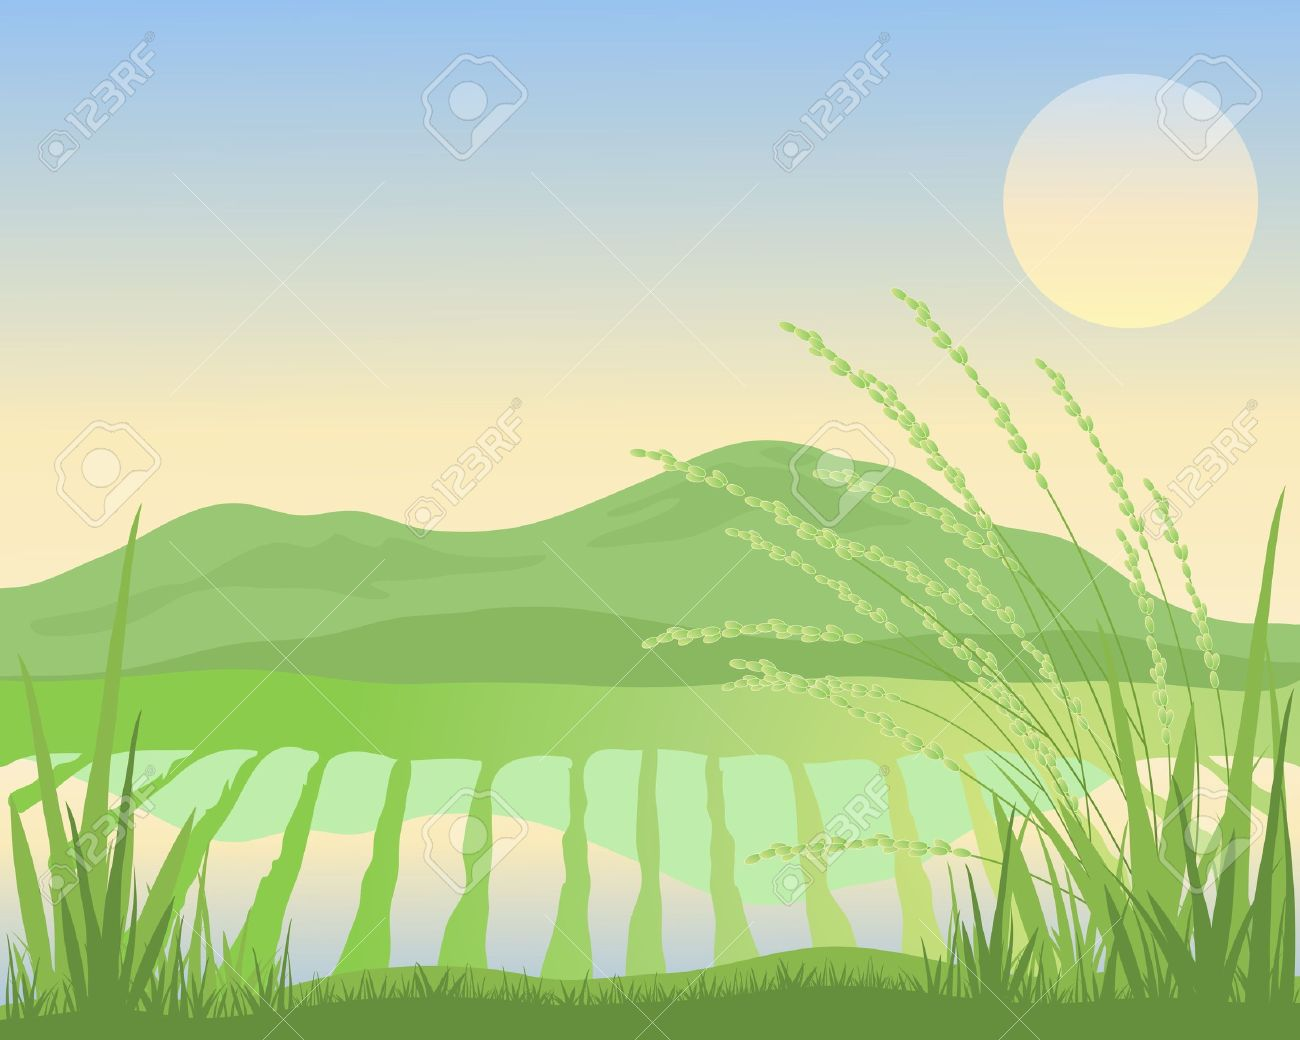 Rice Paddy Field Clipart.